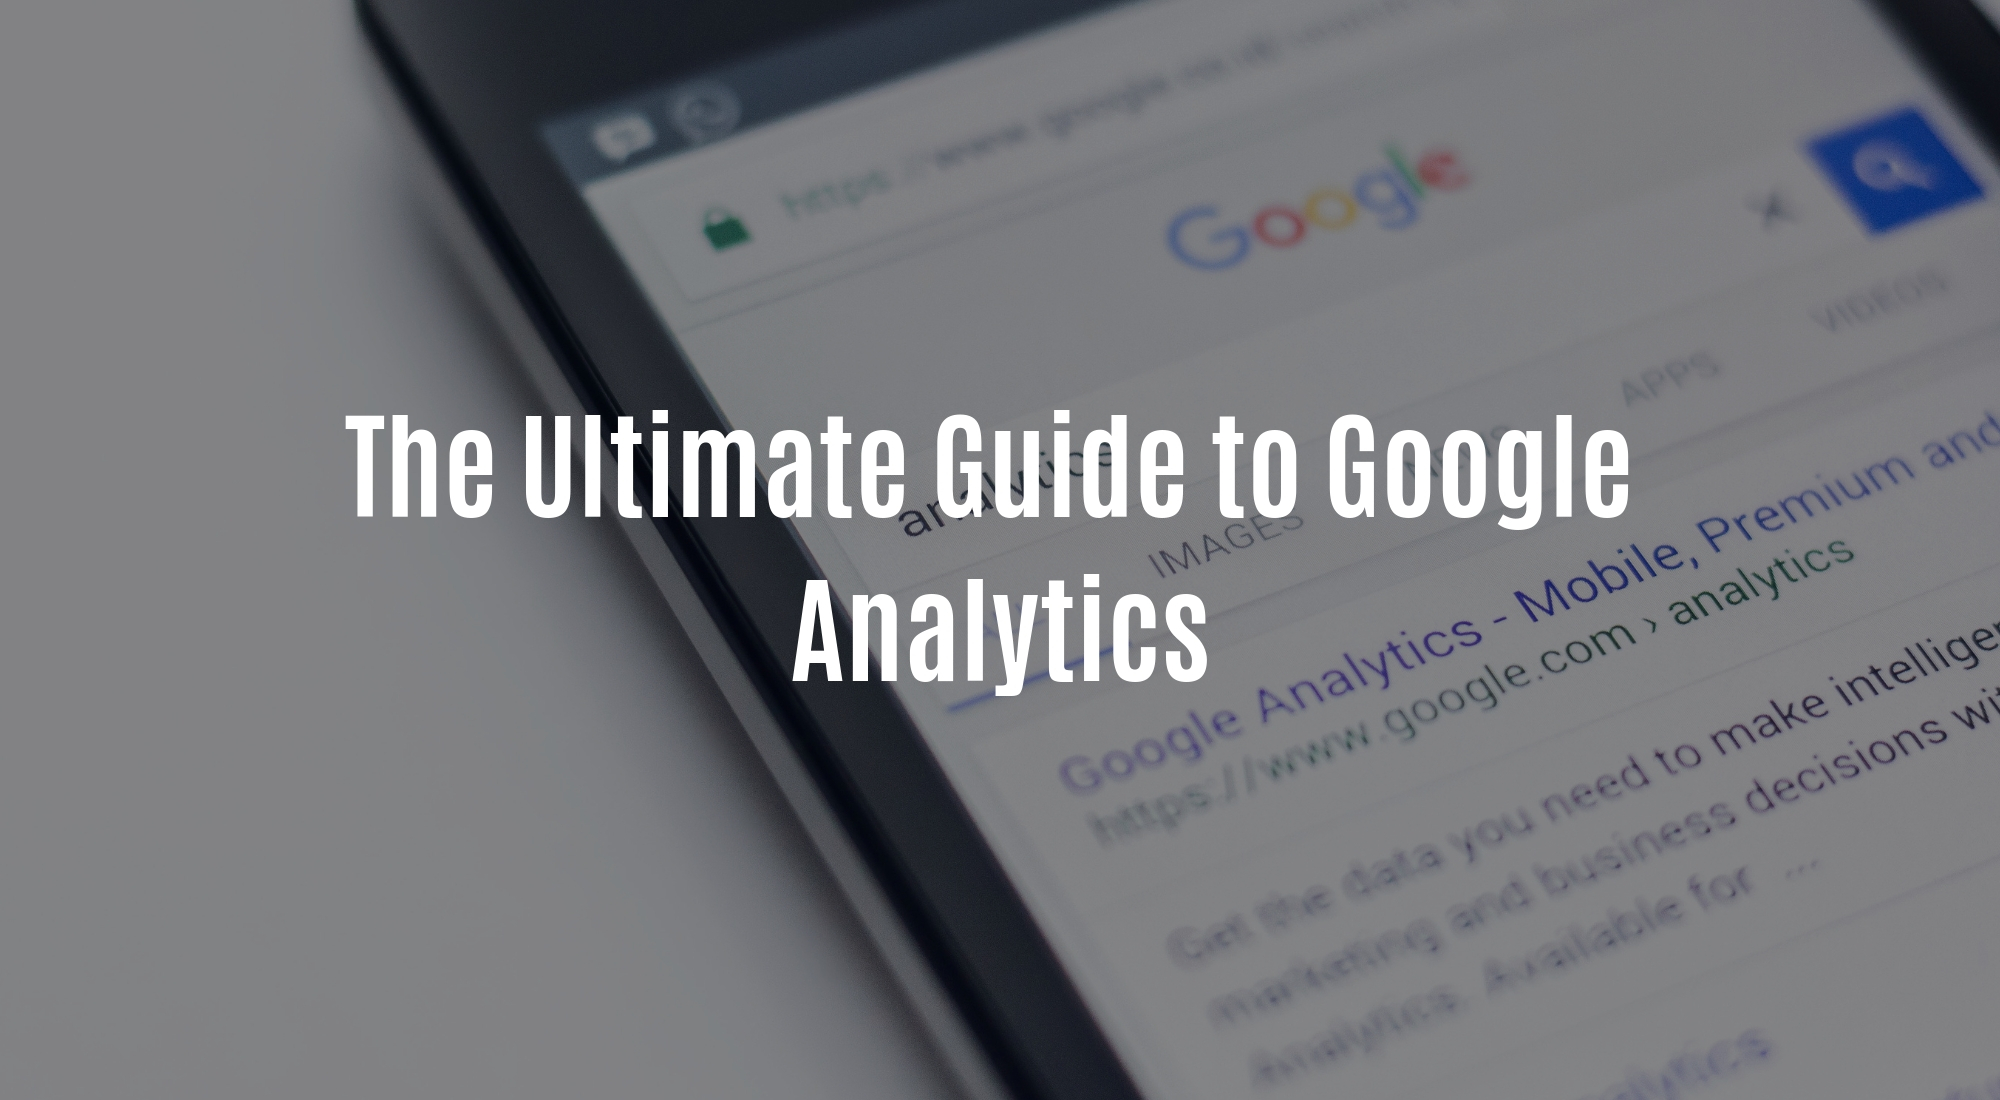 The Ultimate Guide to Google Analytics.jpg